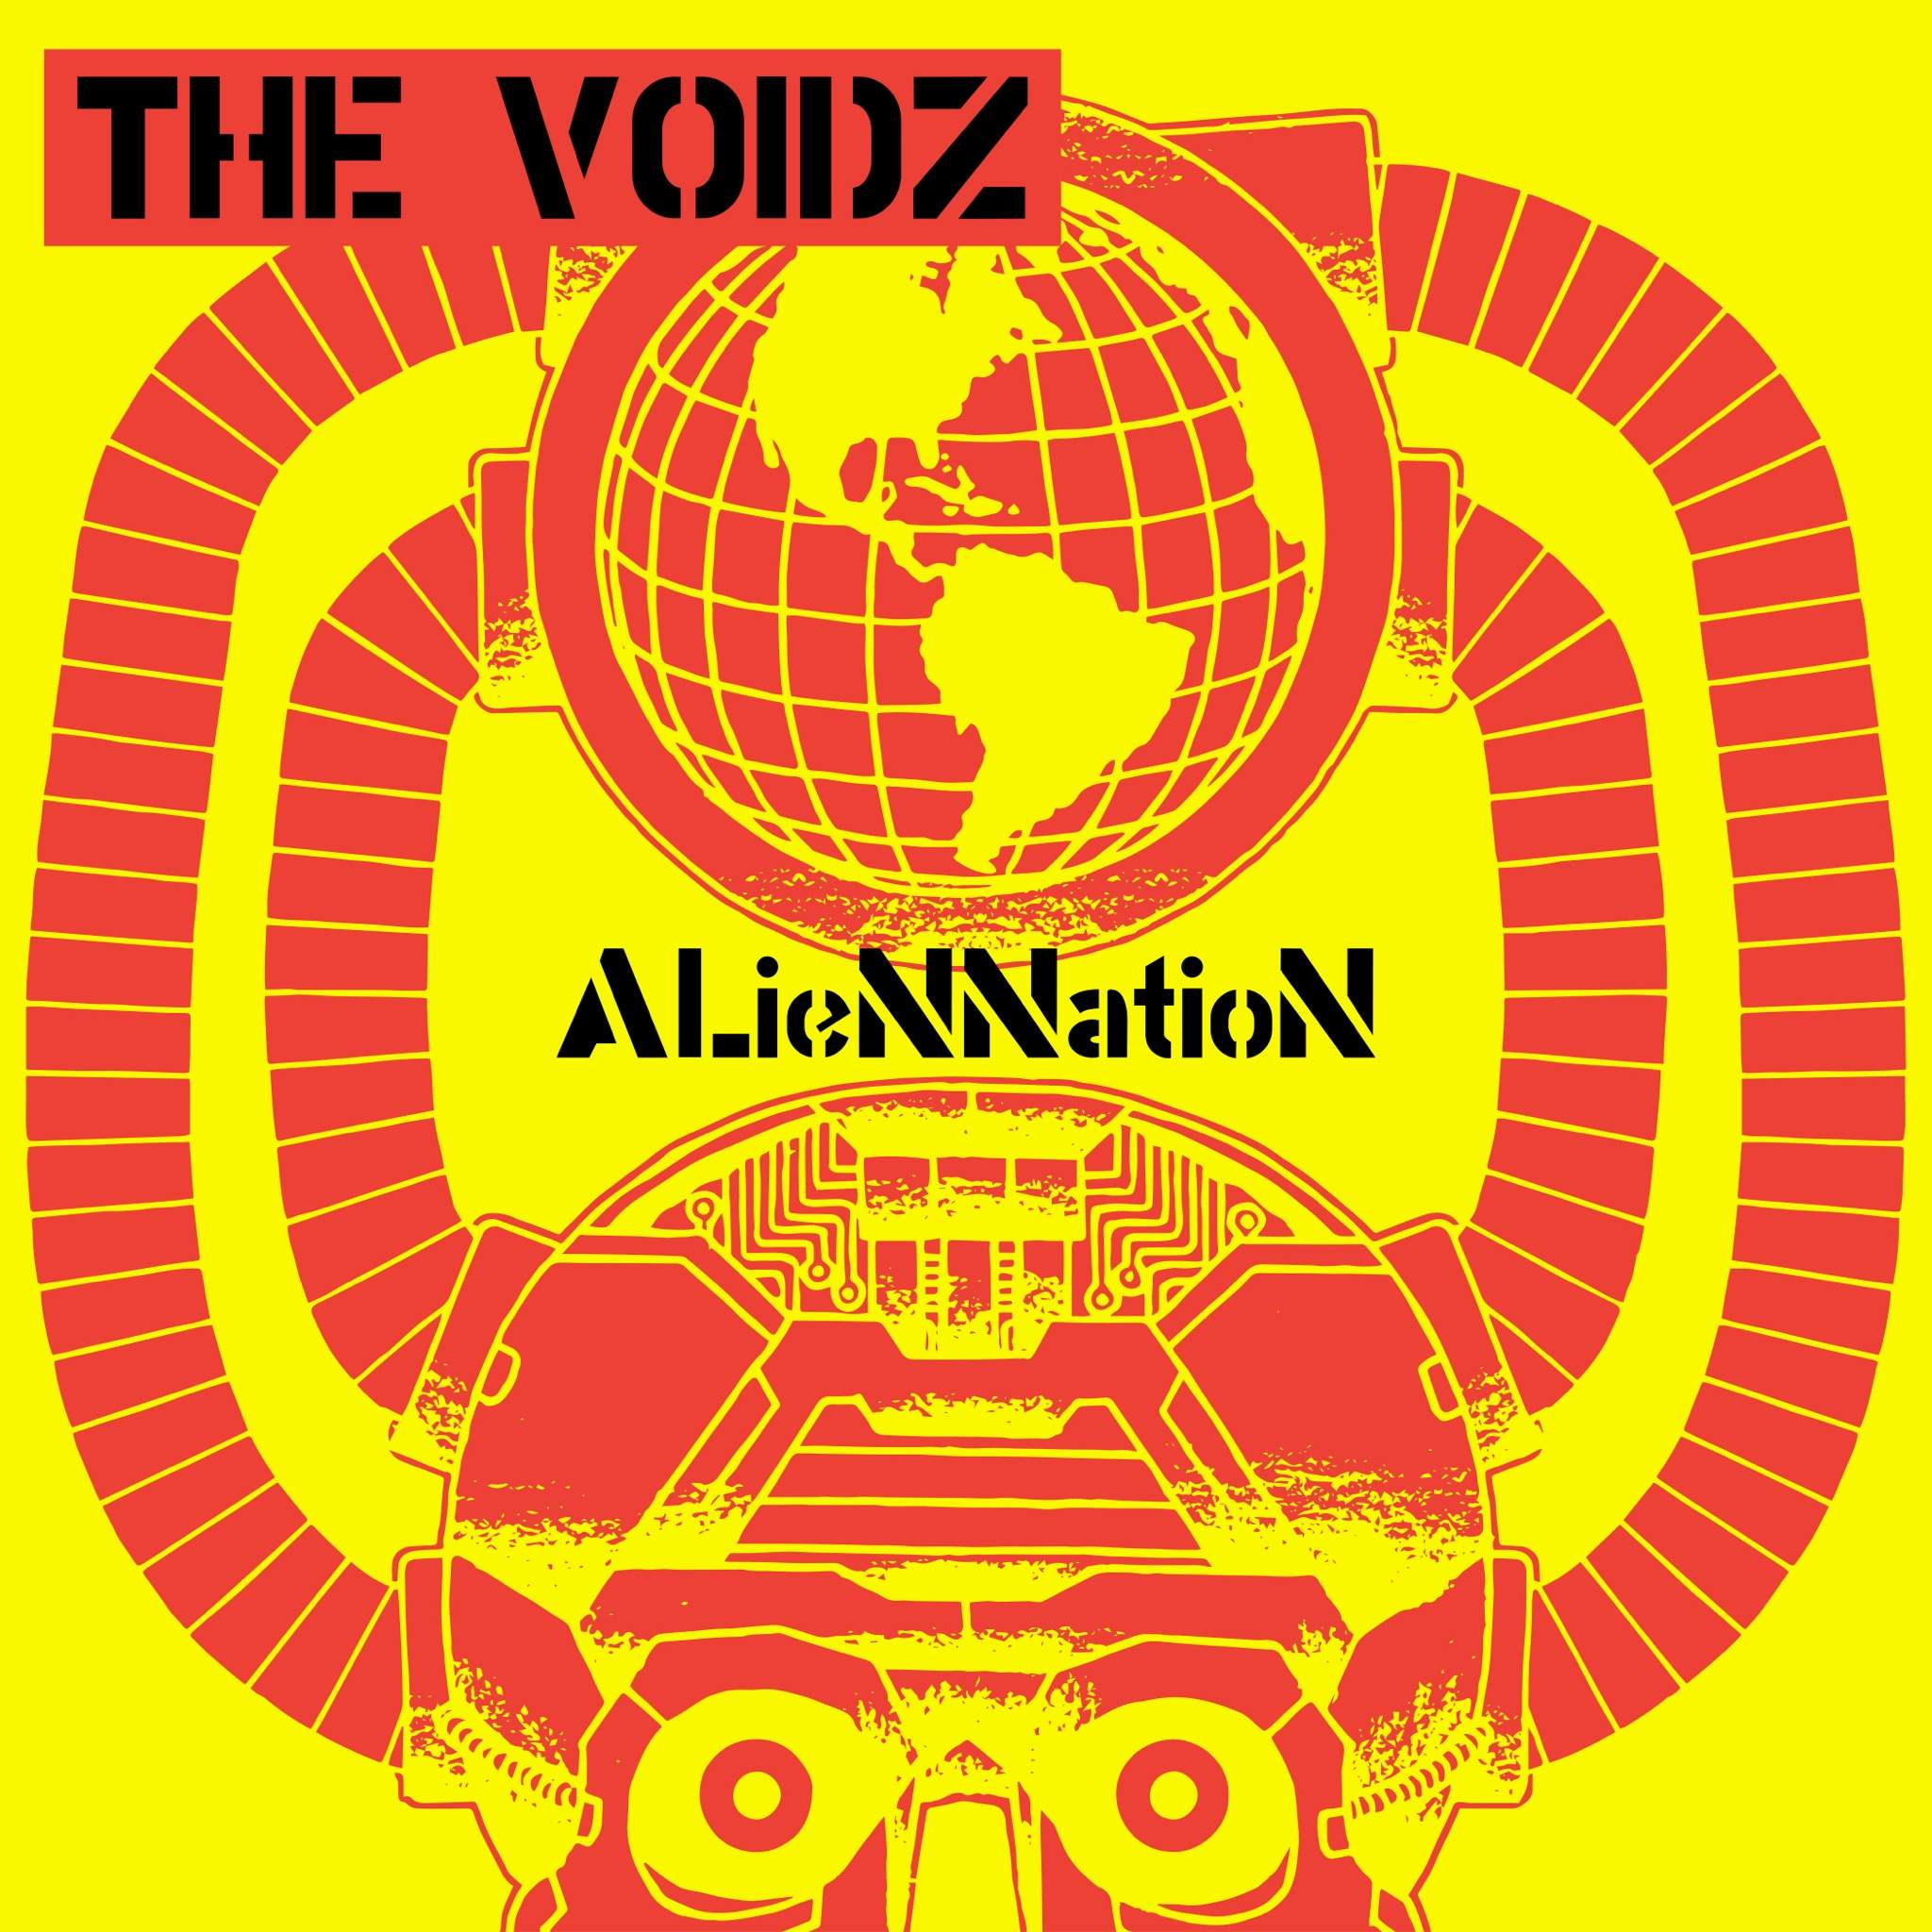 LISTEN TO ALIENNATION FROM THE VOIDZ